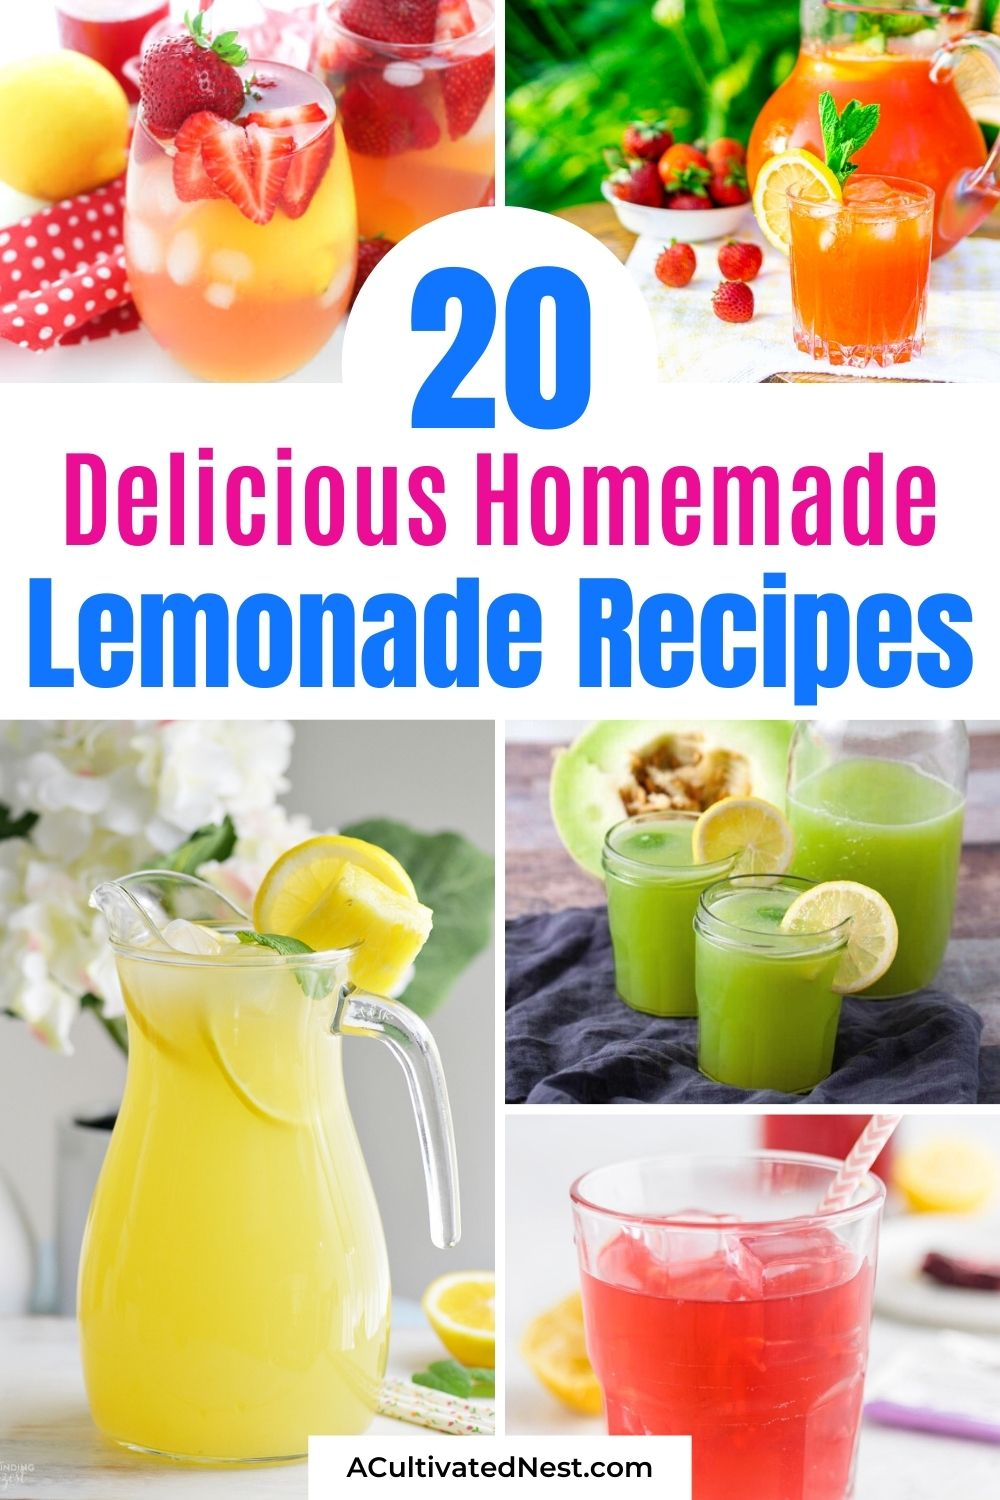 20 Delicious Homemade Lemonade Recipes- These thirst-quenching, delicious homemade lemonade recipes are easy to make and are the perfect treat on a hot day! | how to make lemonade from scratch, #drinks #drinkRecipes #lemonadeRecipe #summerDrink #ACultivatedNest